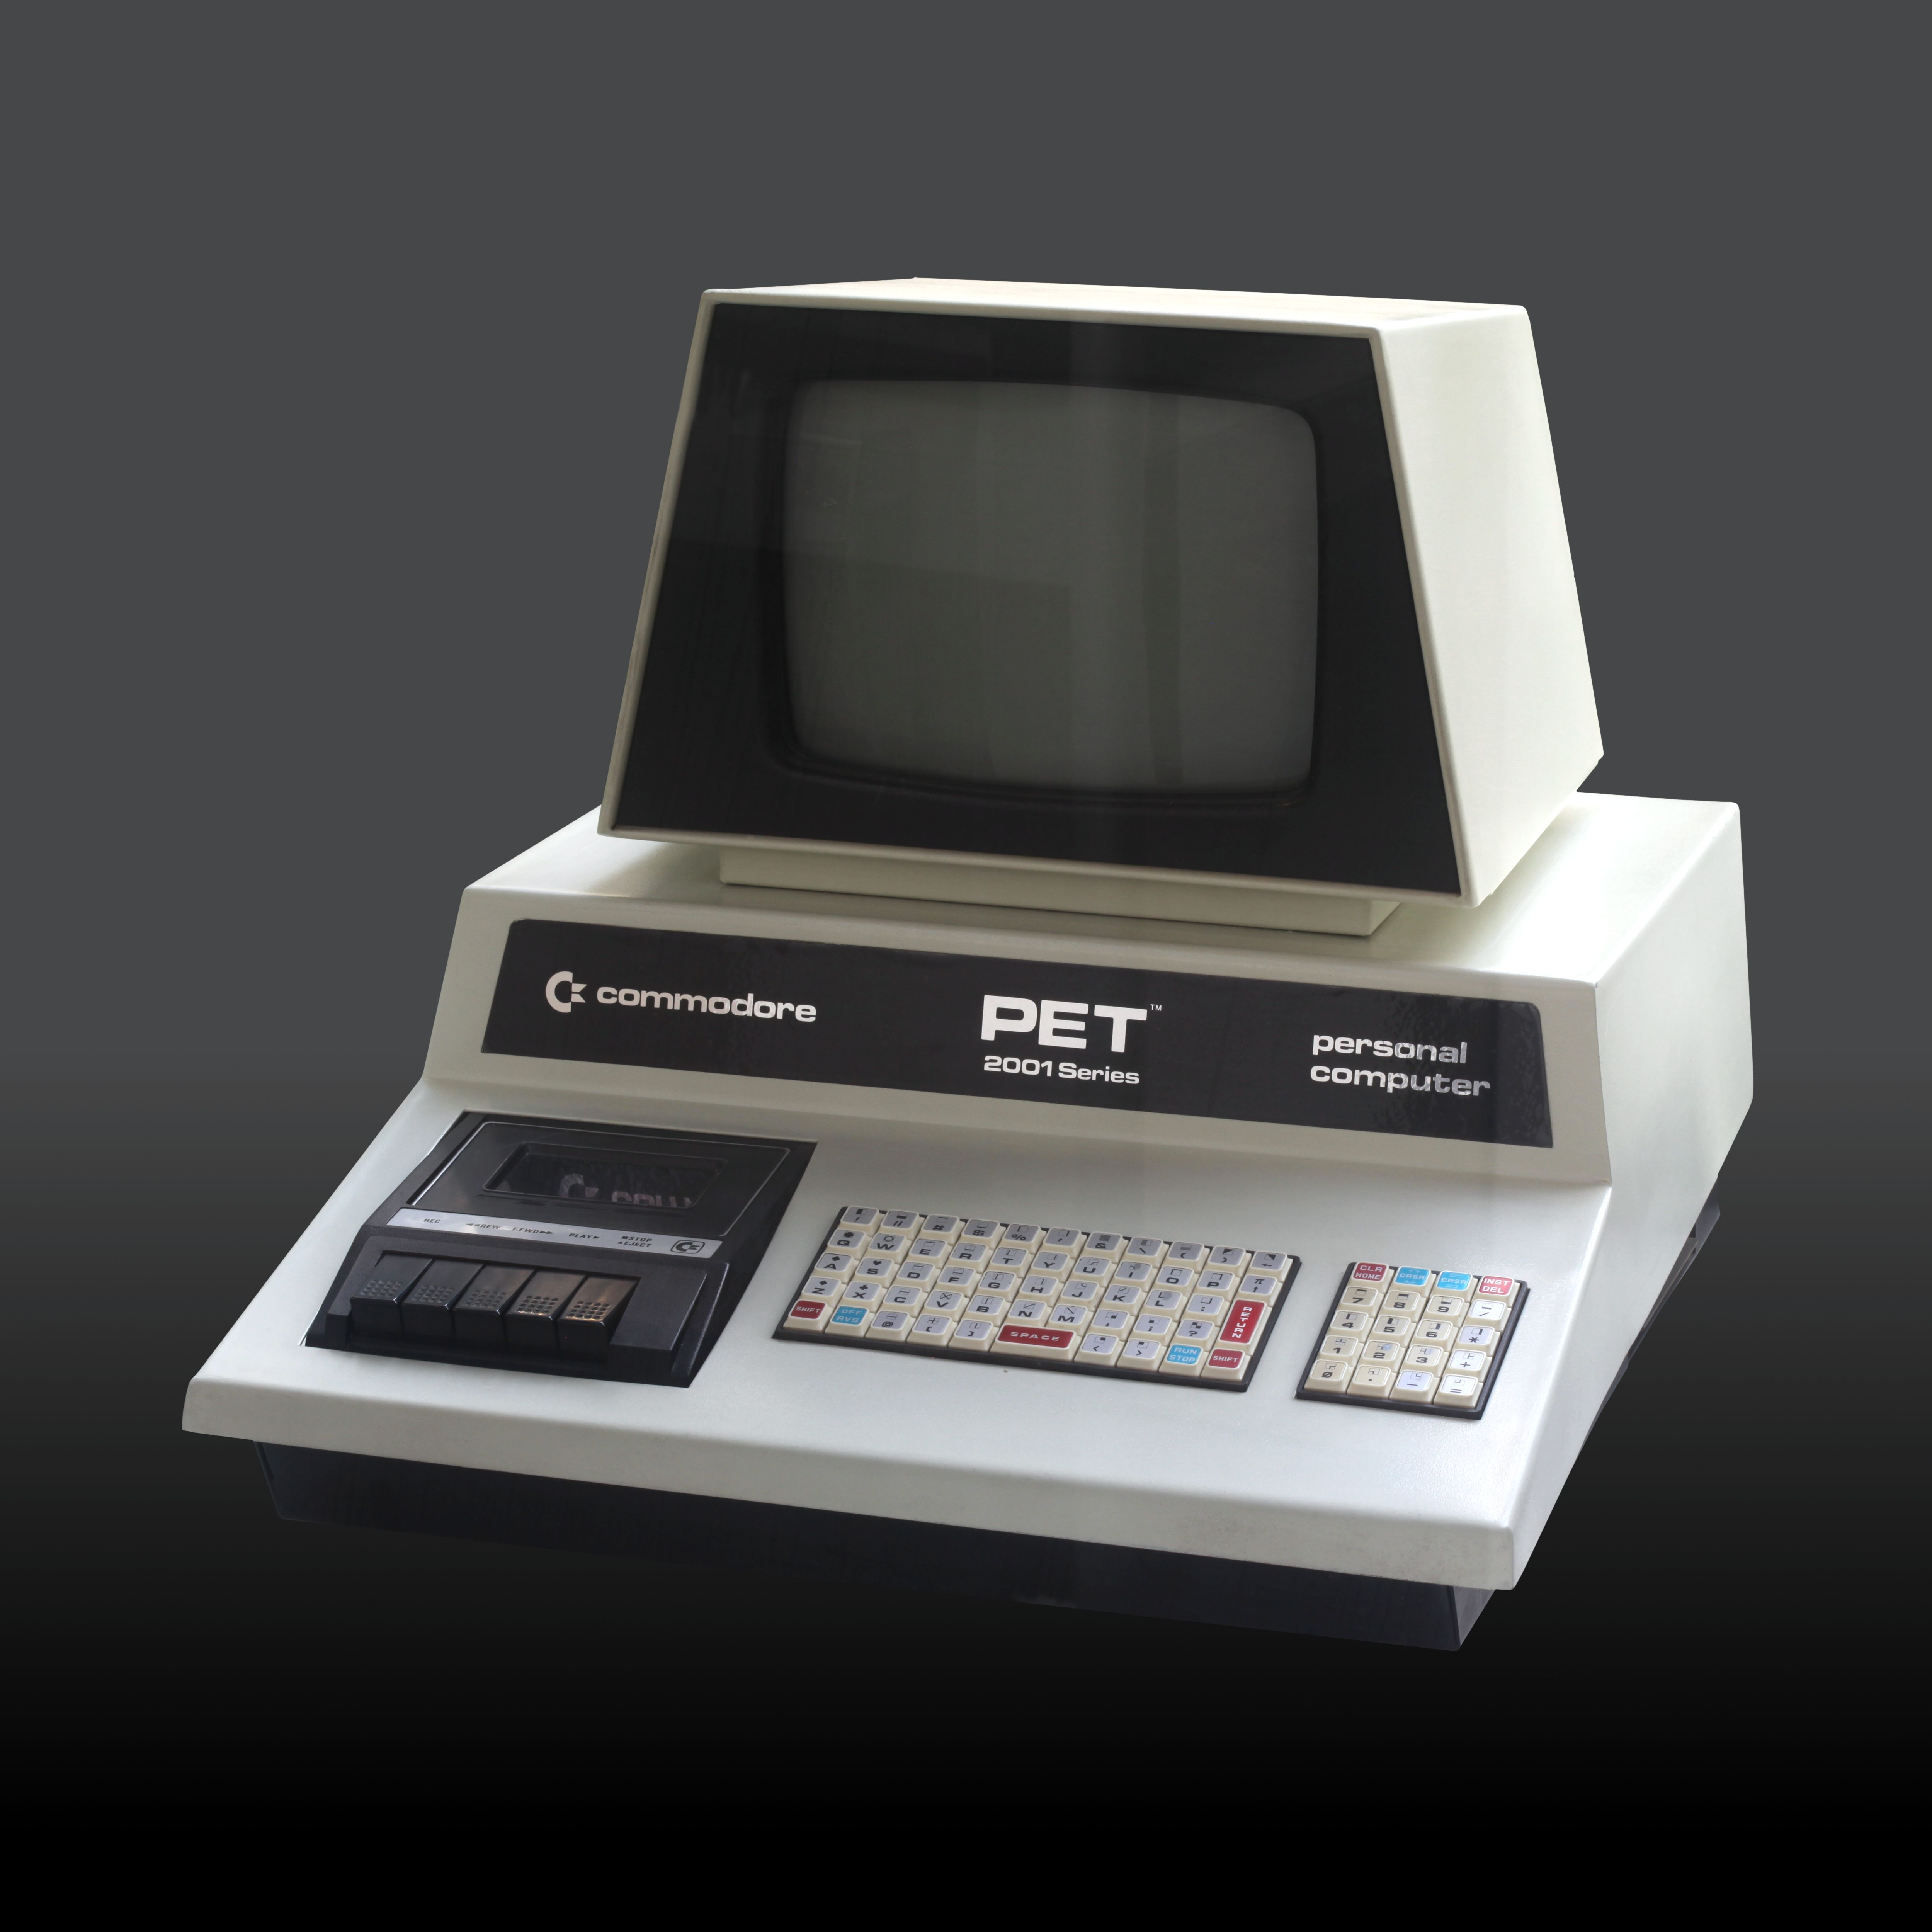 Computers Technology: PC HISTORY: ••Commodore PET 2001•• The 2nd Successful PC